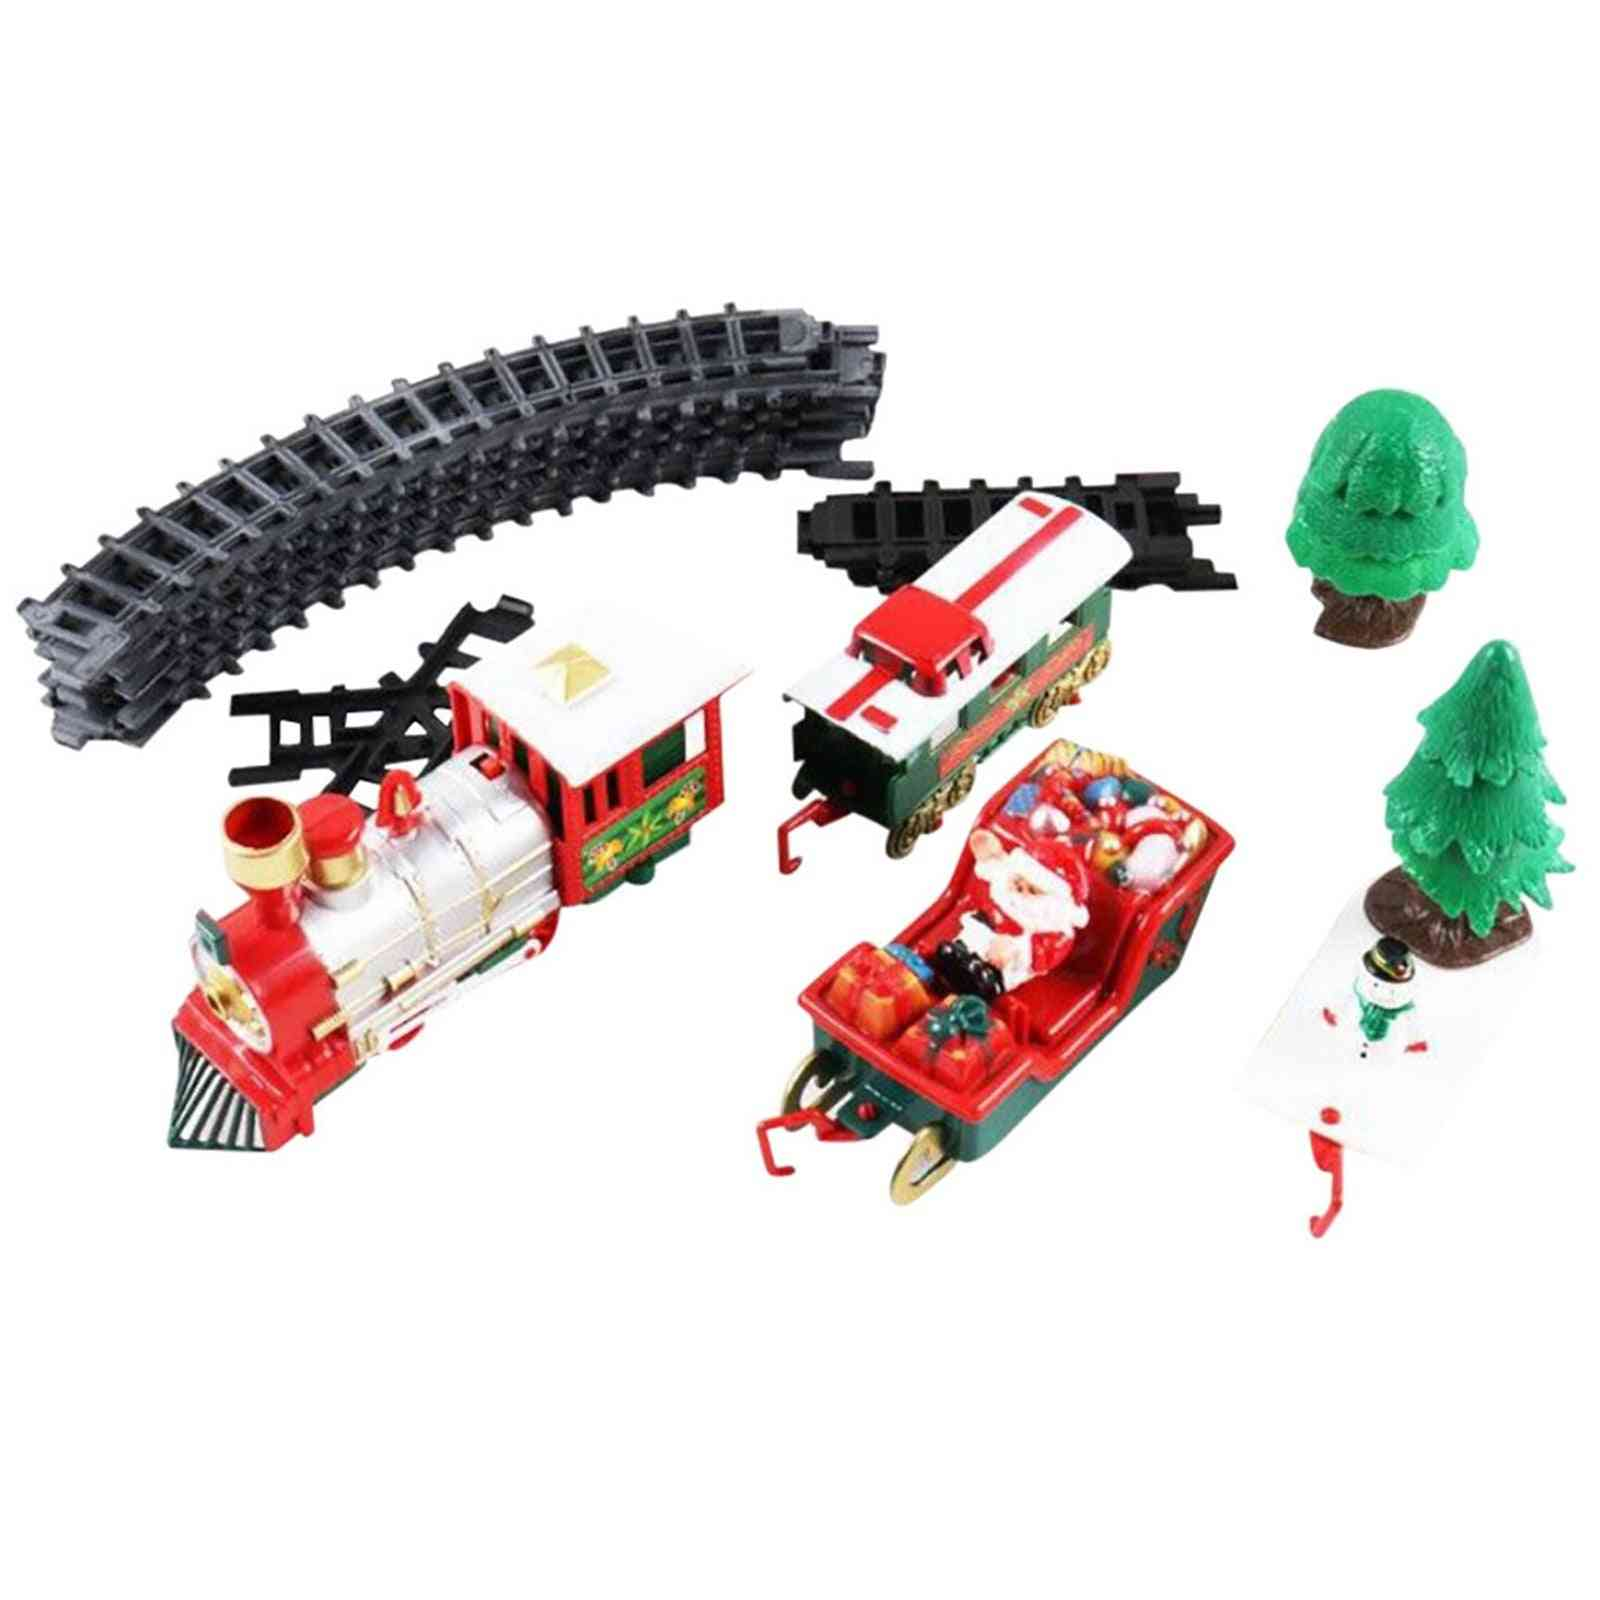 Train Set With Lights And Sounds, Christmas Railway Tracks, Battery Operated, Xmas